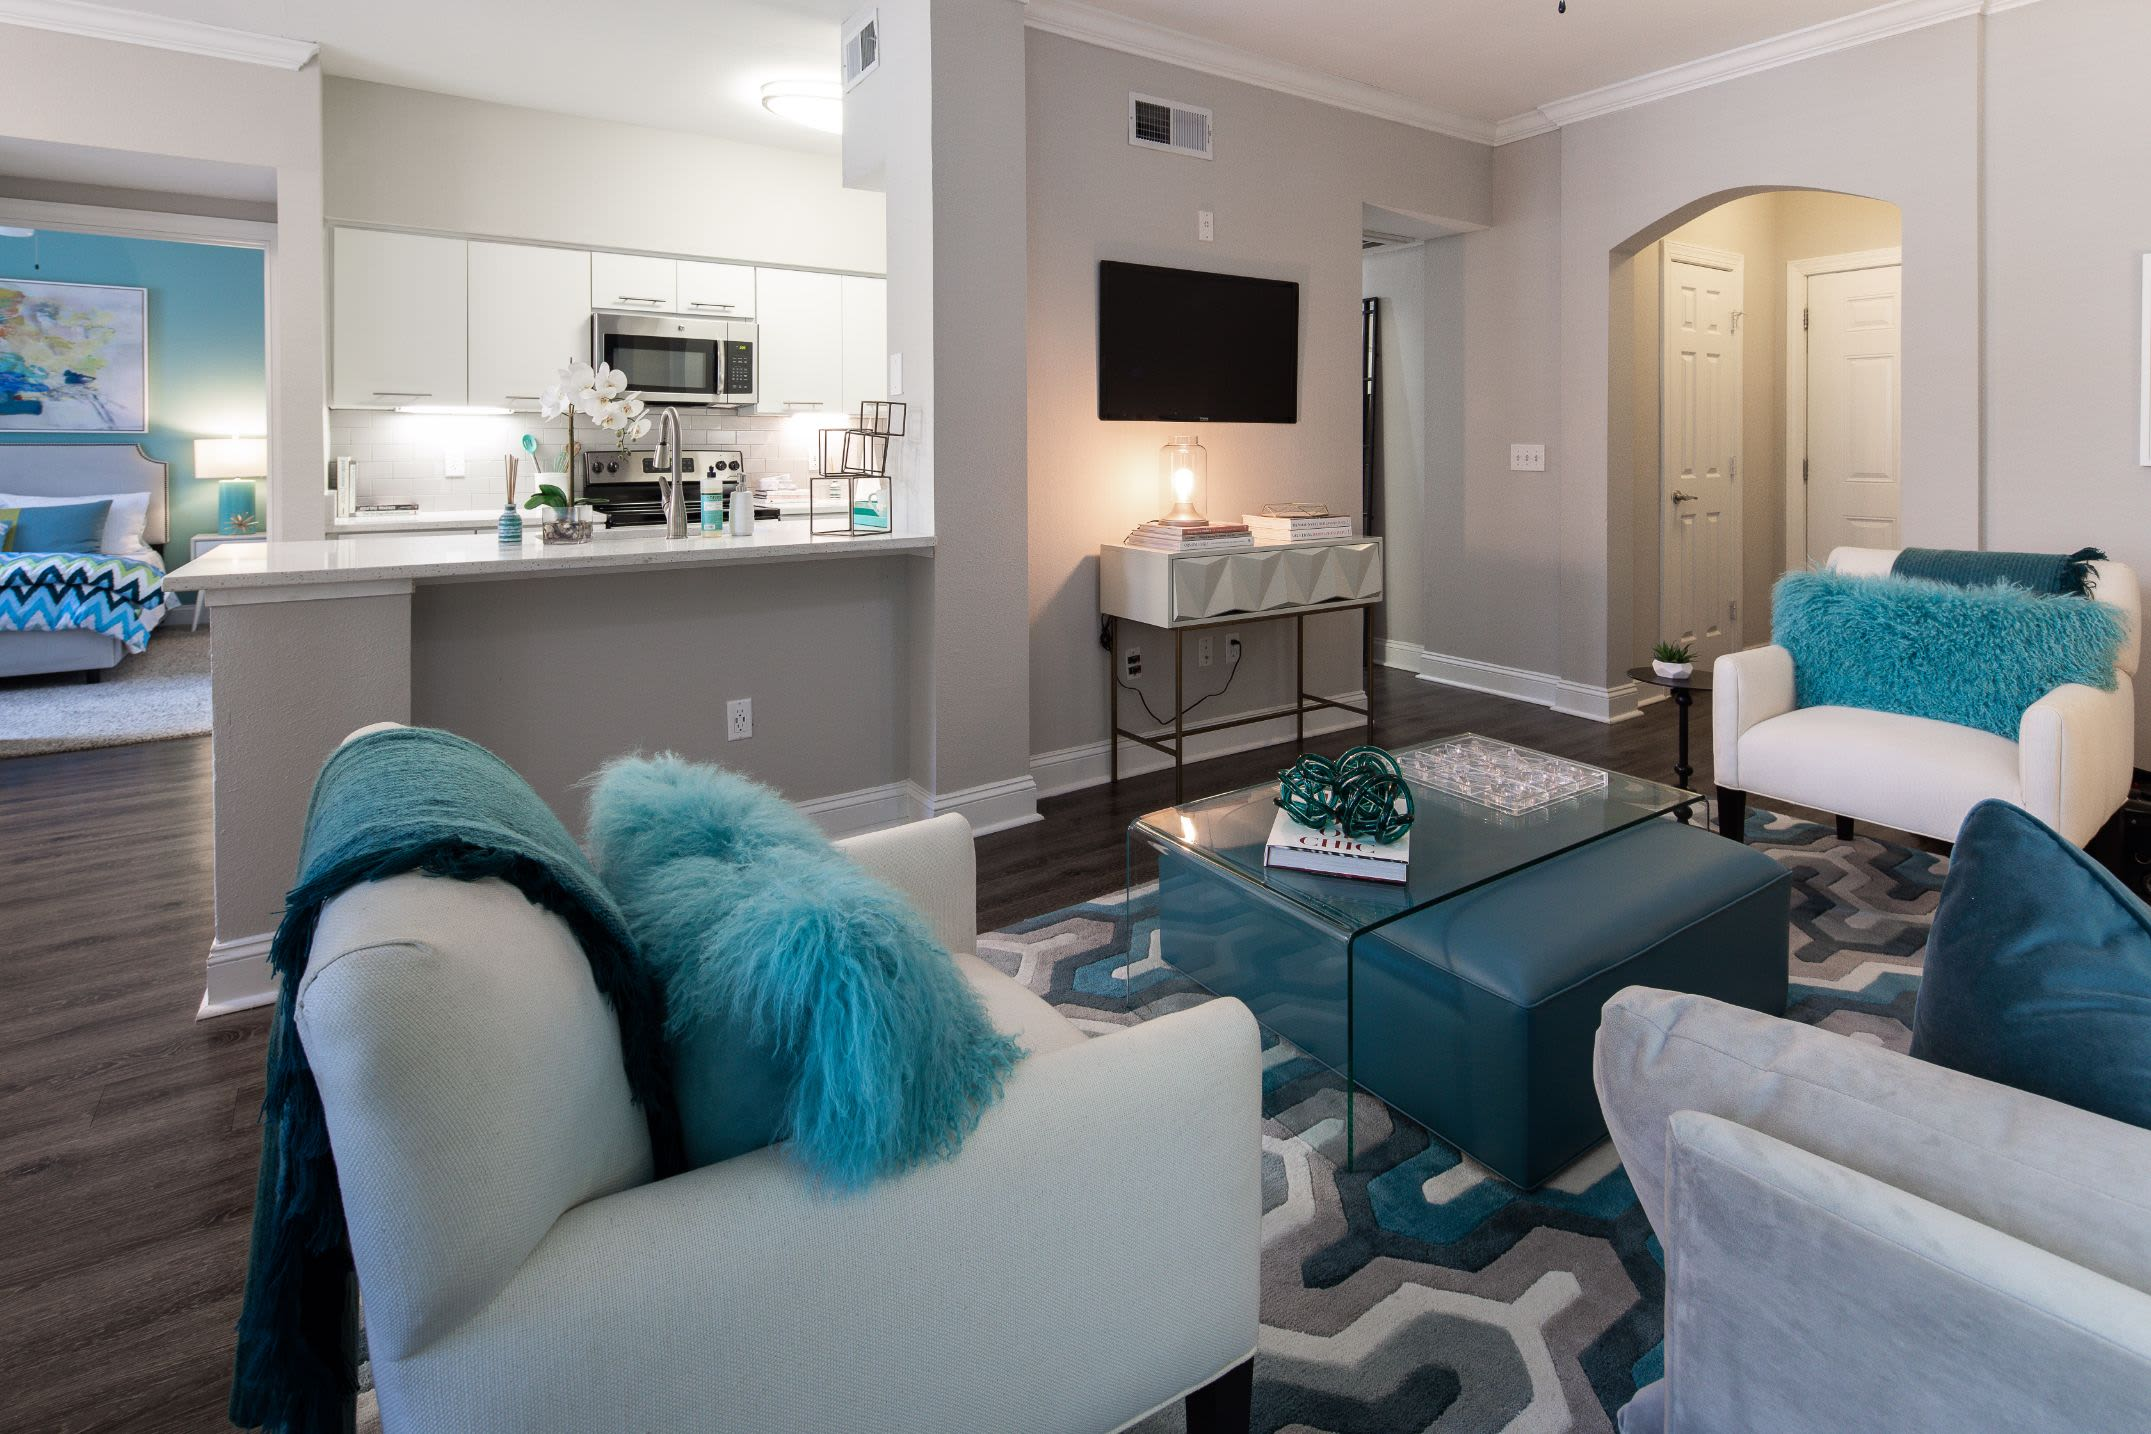 Open living area with kitchen behind it at Marq Perimeter in Atlanta, Georgia